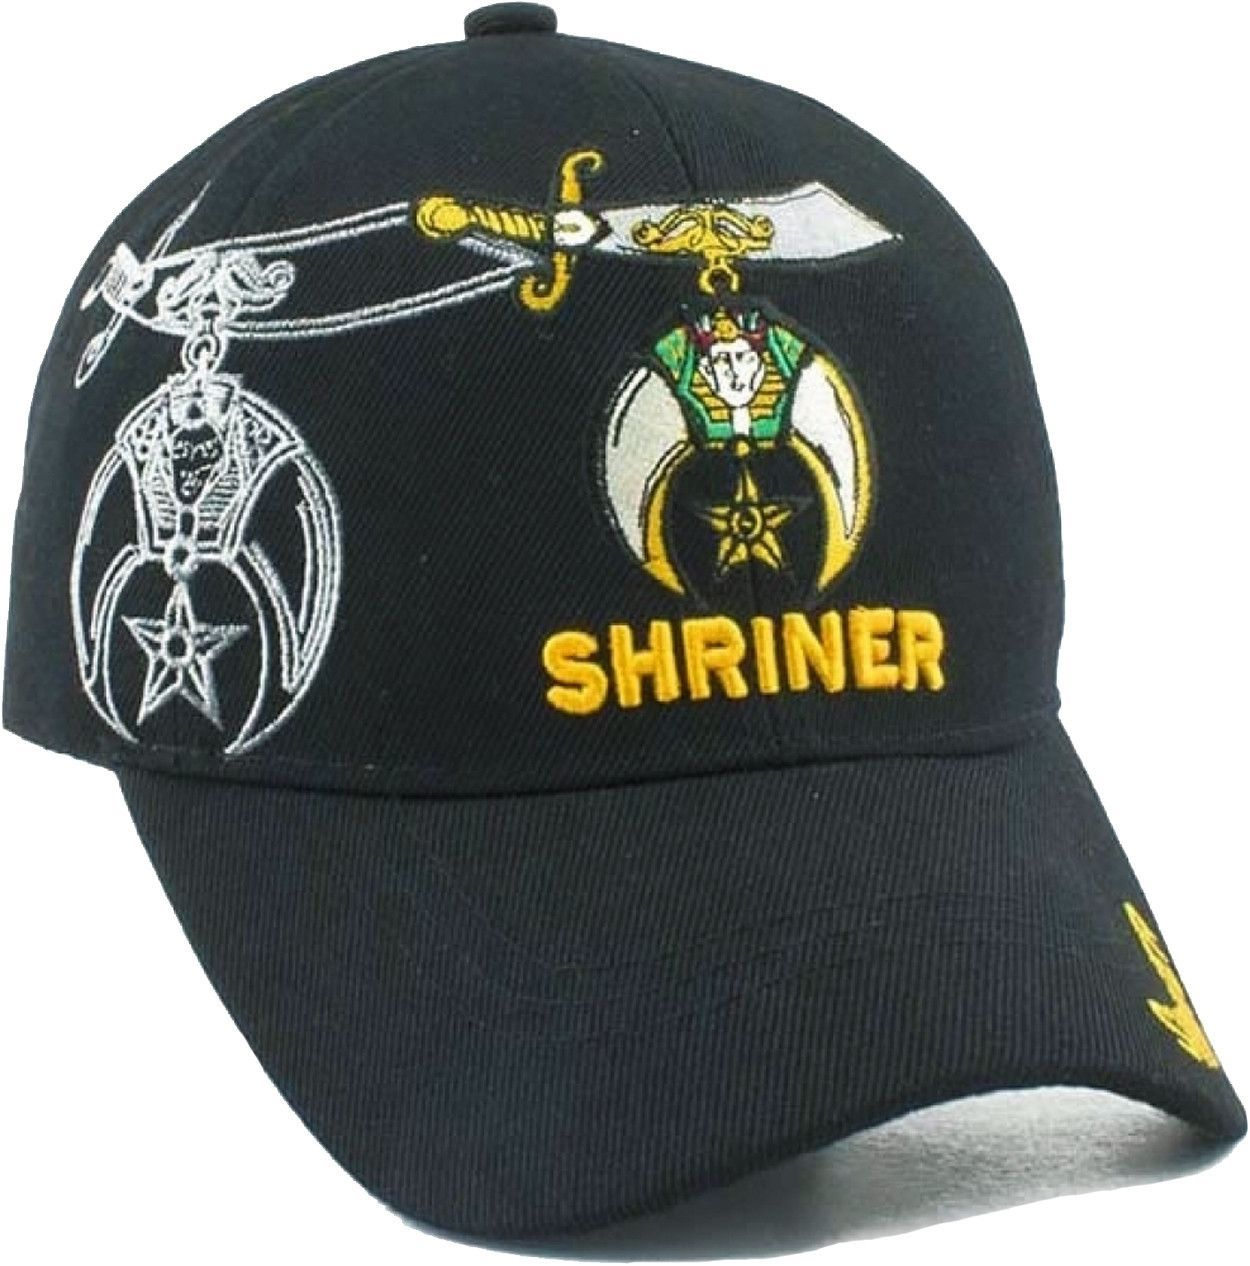 9af1a1b2a88 Shriner Hat Black Baseball Cap with Logo Associated with Freemasons  Shriners Prince Hall Masons Lodge Headwear